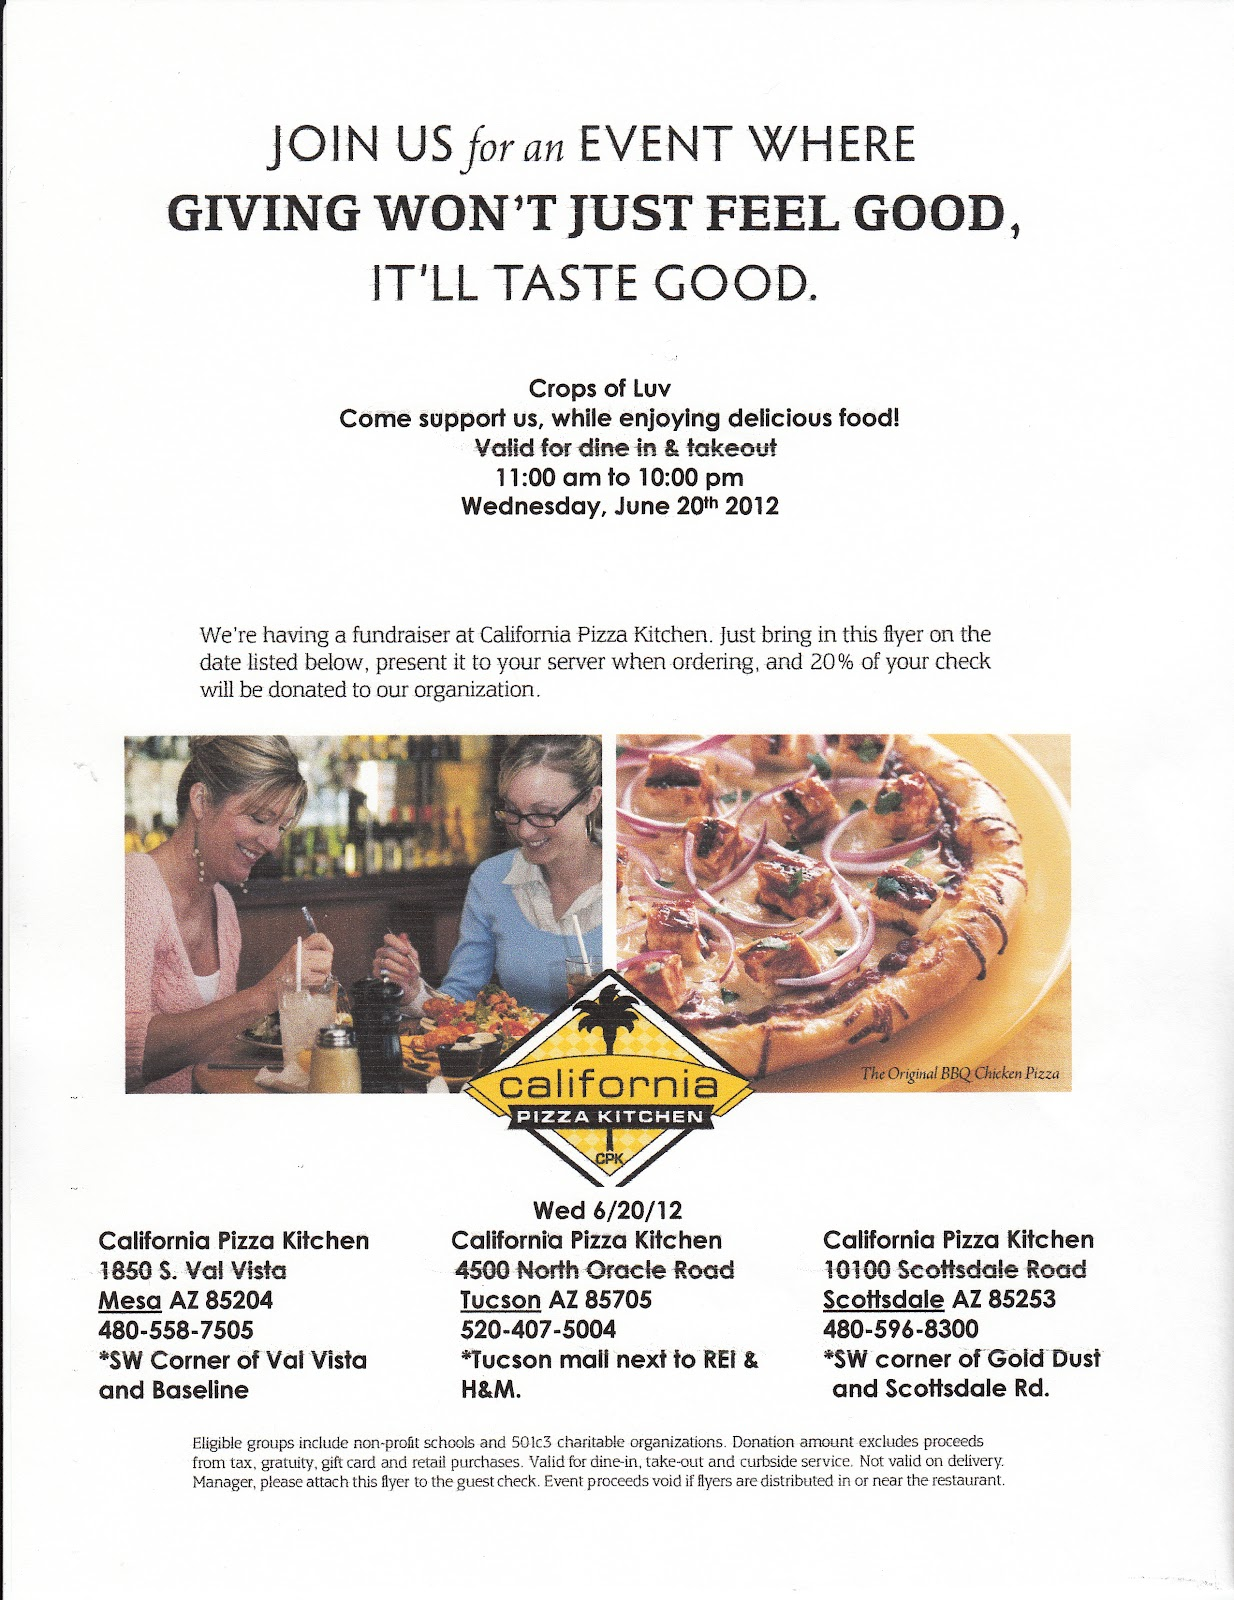 Crops Of Luv Happenings California Pizza Kitchen Fundraiser For Crops Of Luv